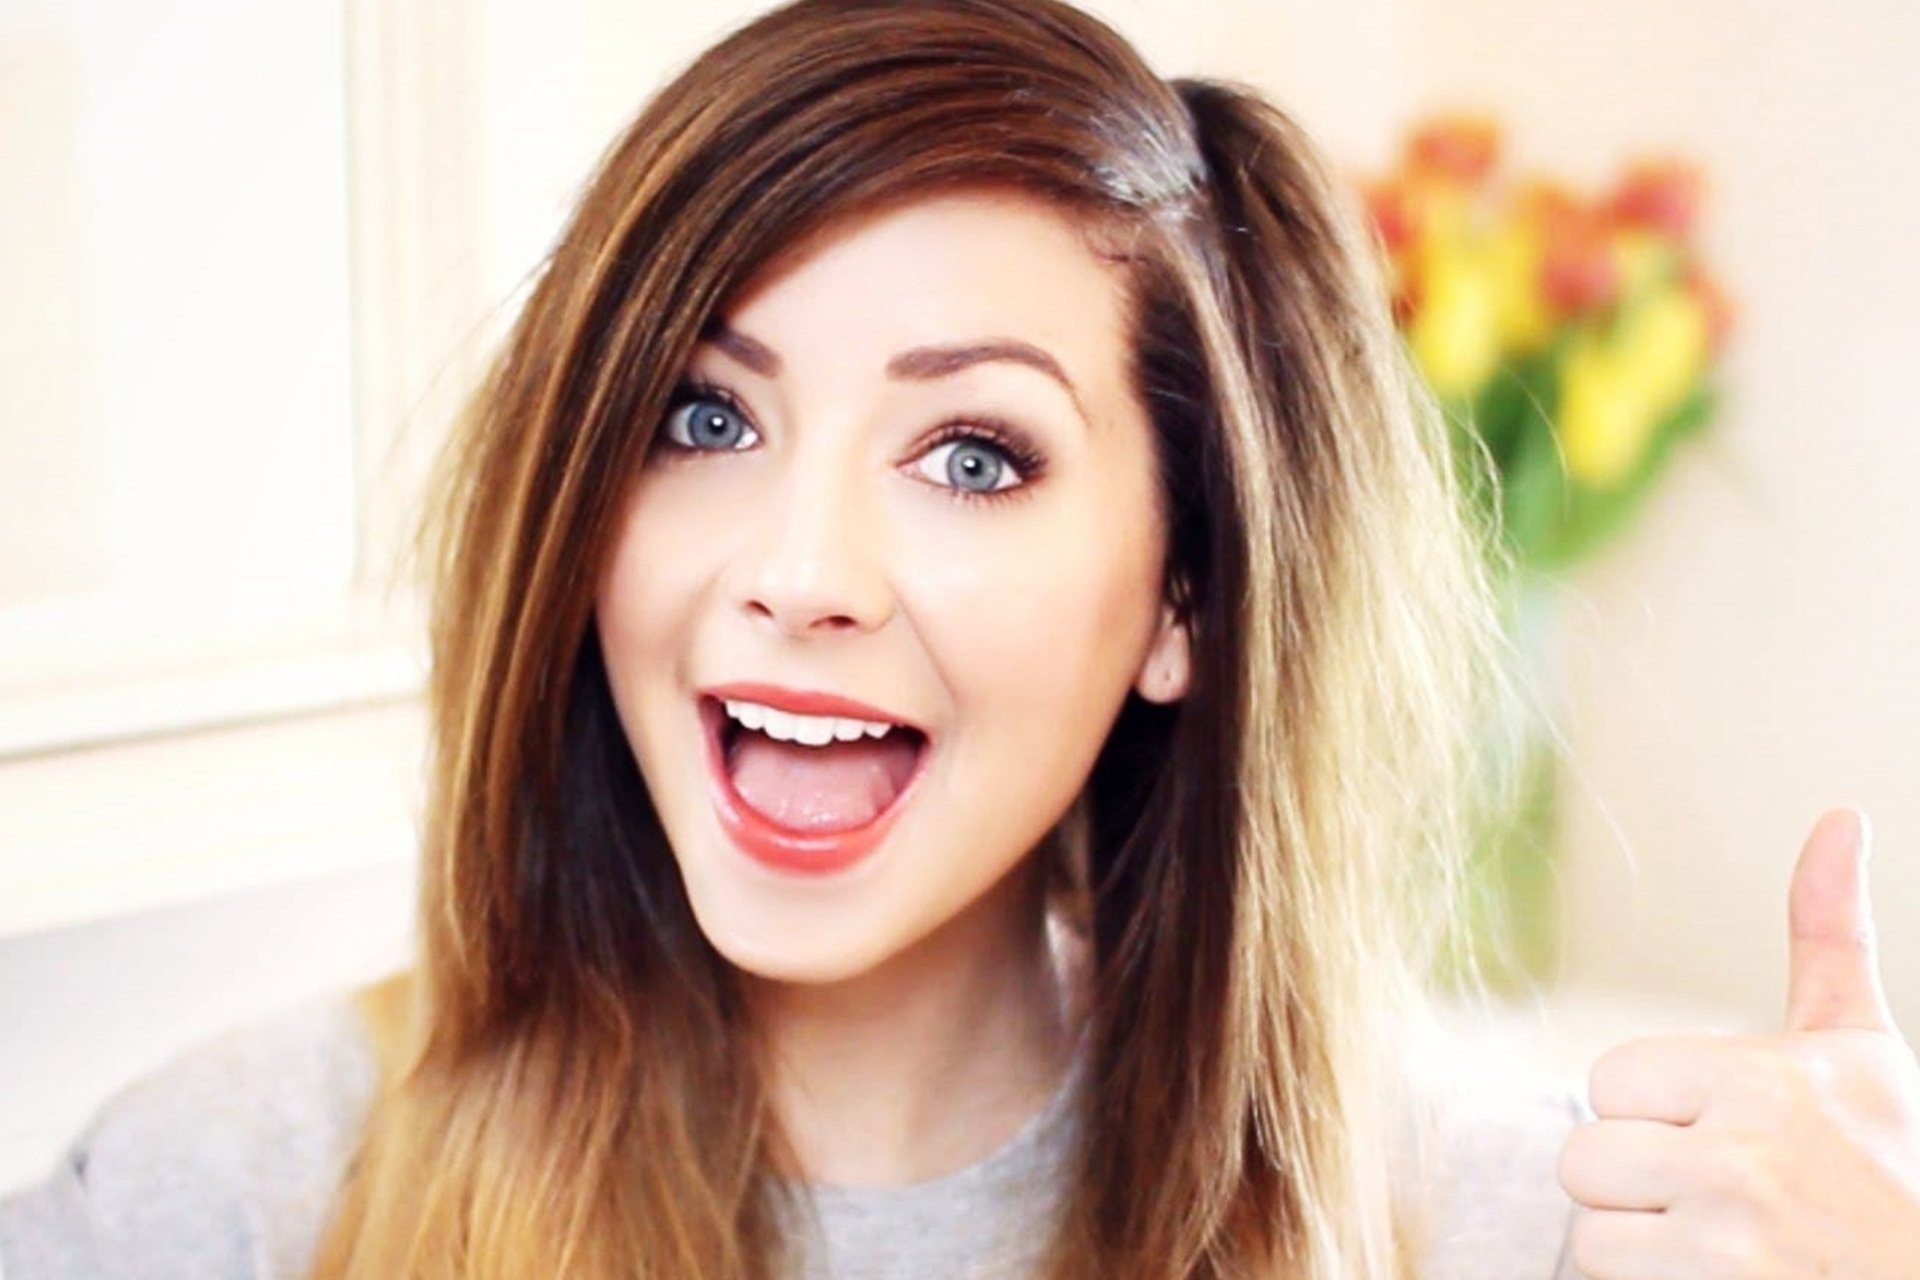 Zoellafan Images Zoella Swag  E  A Hd Wallpaper And Background Photos  C B Download Image